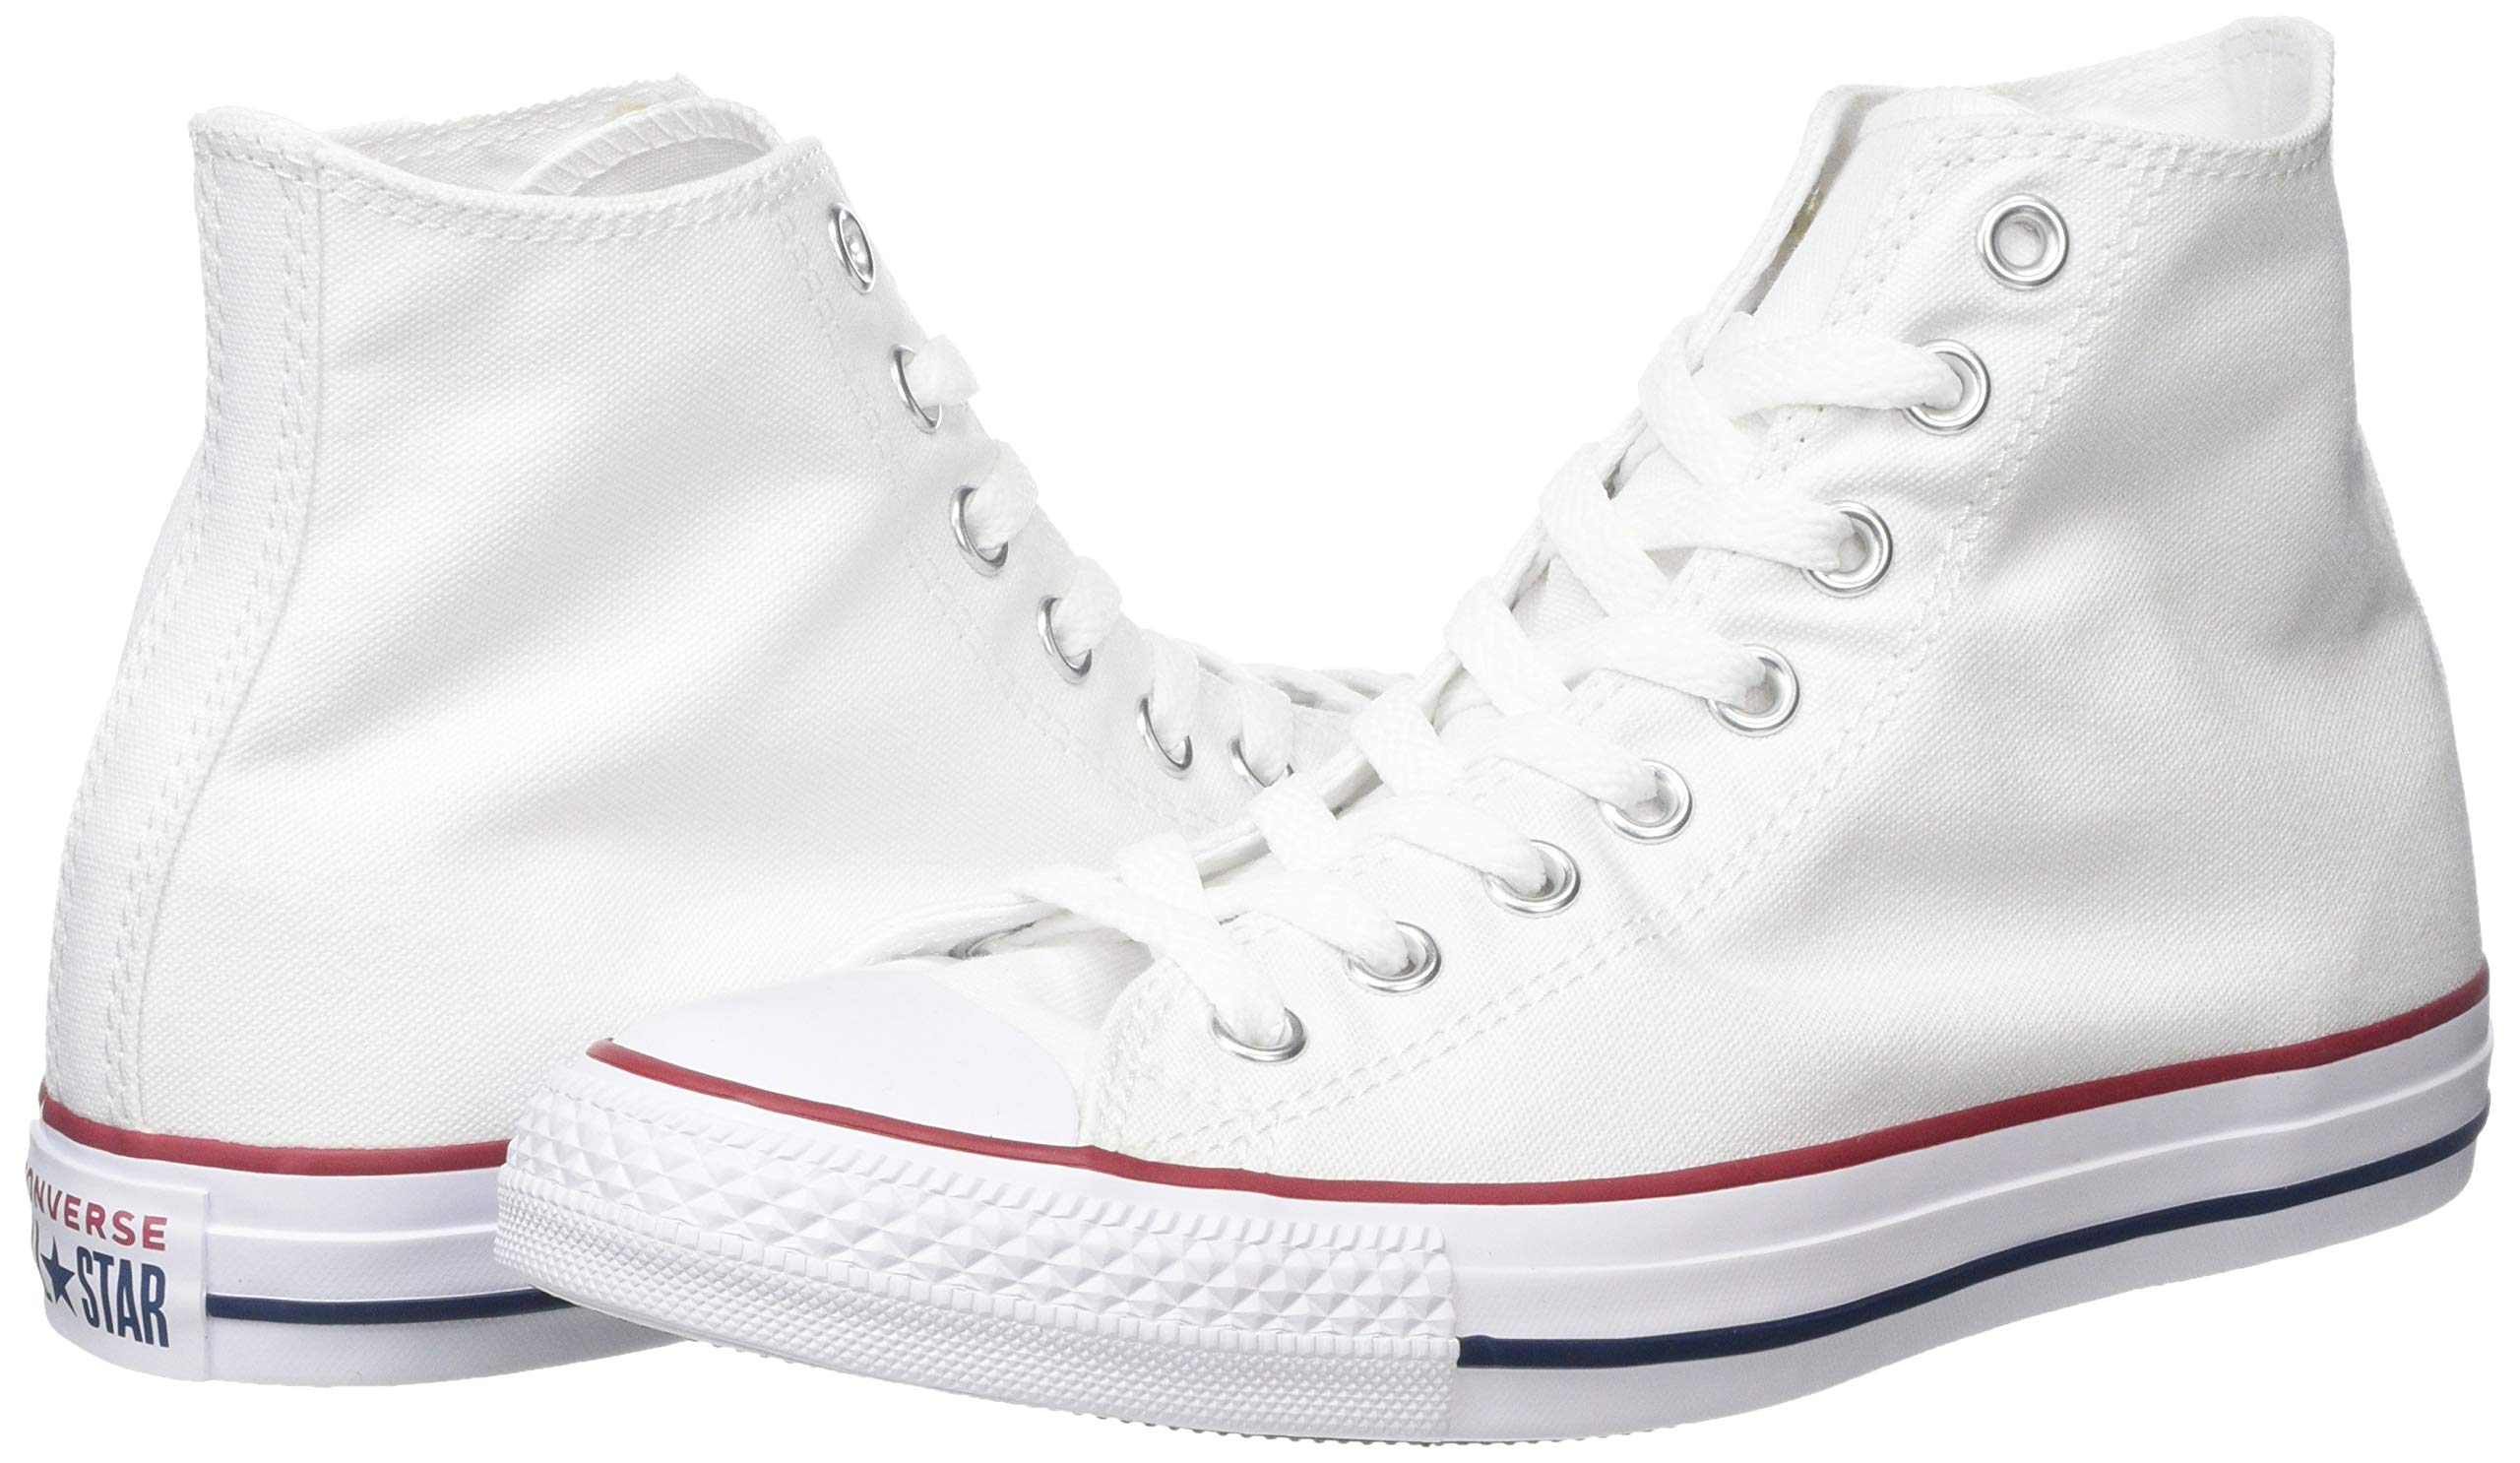 4ebe33289afe Galleon - Converse Unisex Chuck Taylor All Star Hi Oxfords Optical White  4.5 D(M) US